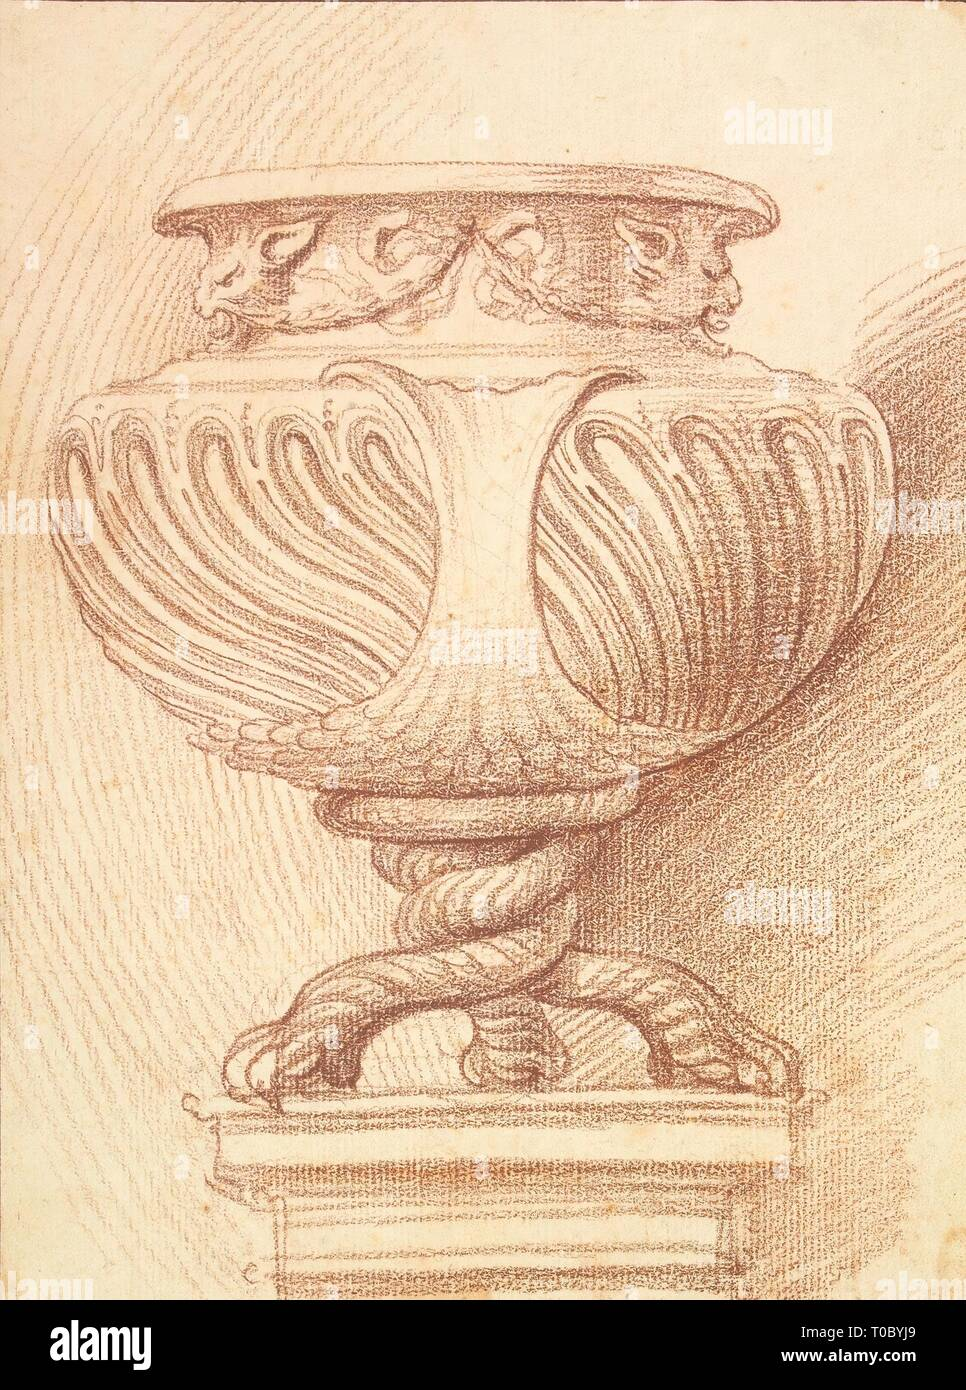 'Vase on Three Twisted Legs Shaped like Paws'. France, Circa 1740. Dimensions: 25,2x18,6 cm. Museum: State Hermitage, St. Petersburg. Author: EDME BOUCHARDON. - Stock Image